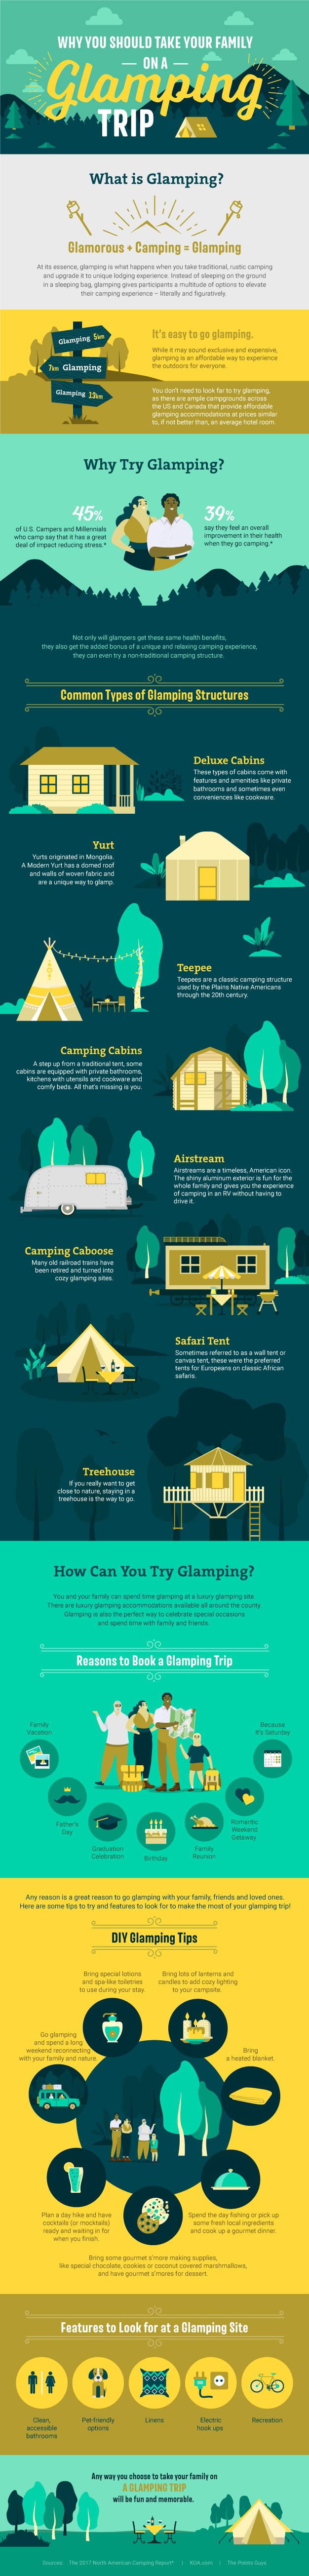 Why You Should Take Your Family on a Glamping Trip